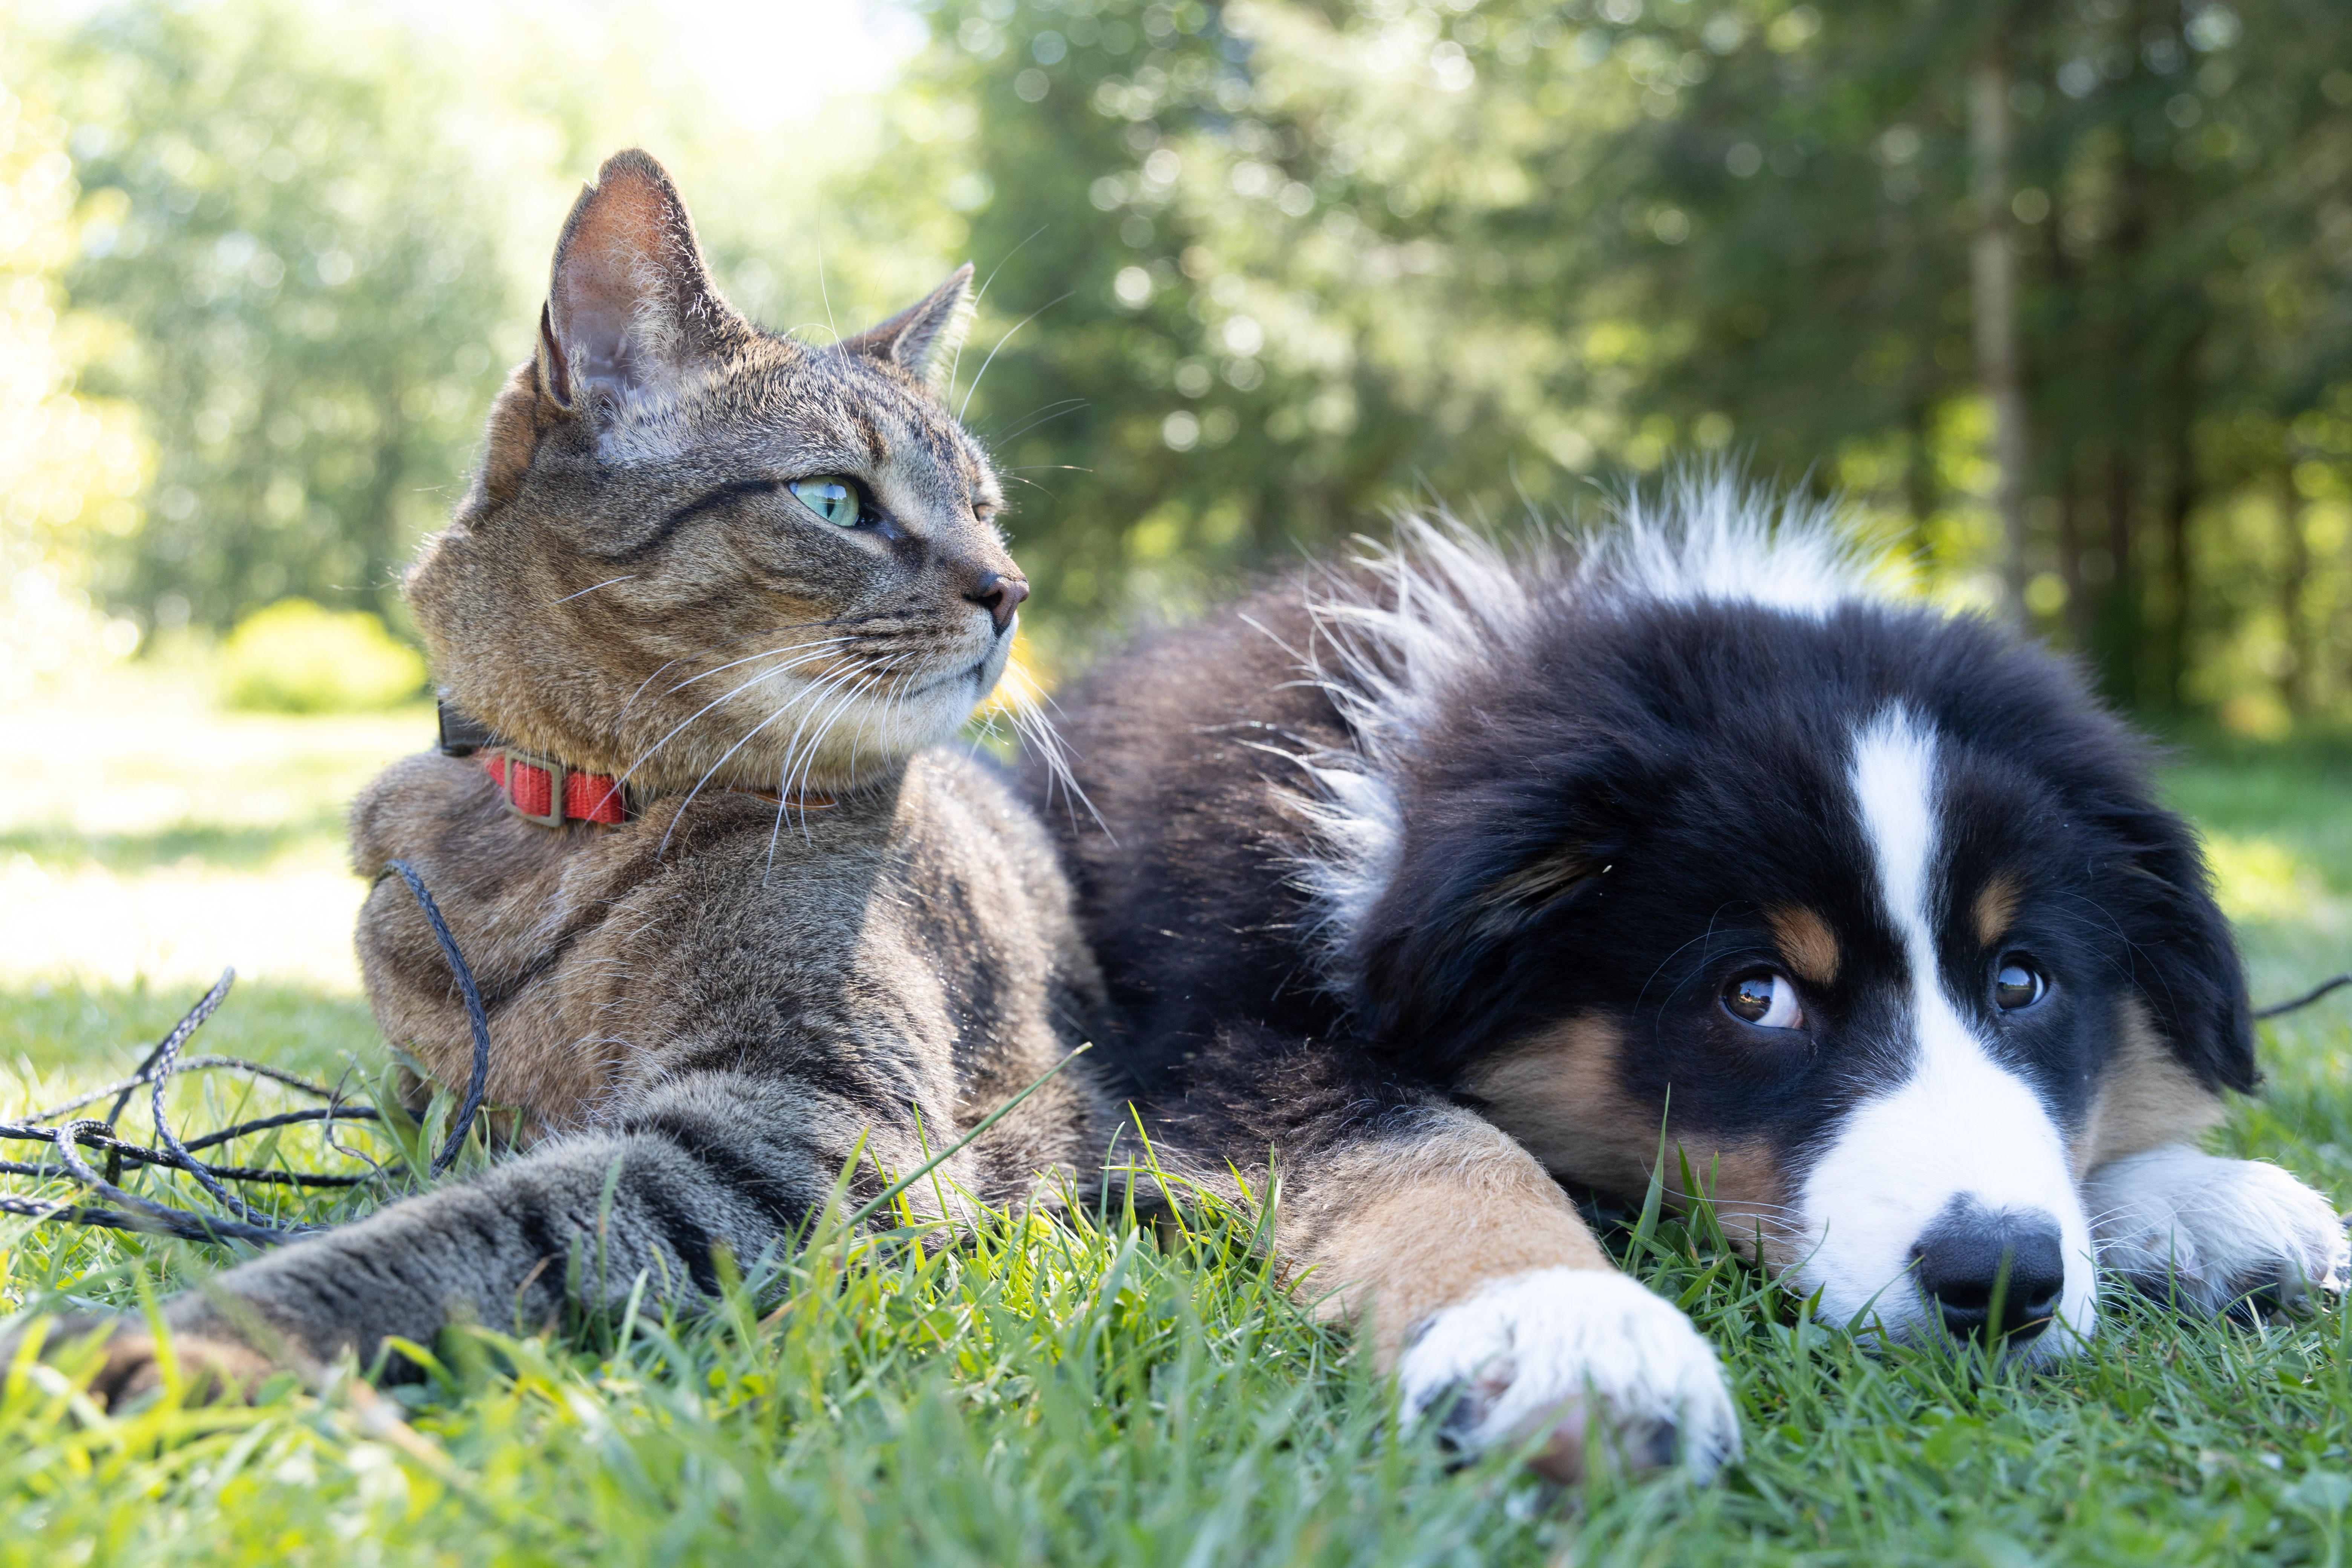 10 Guiness World Records achieved by Cats and Dogs